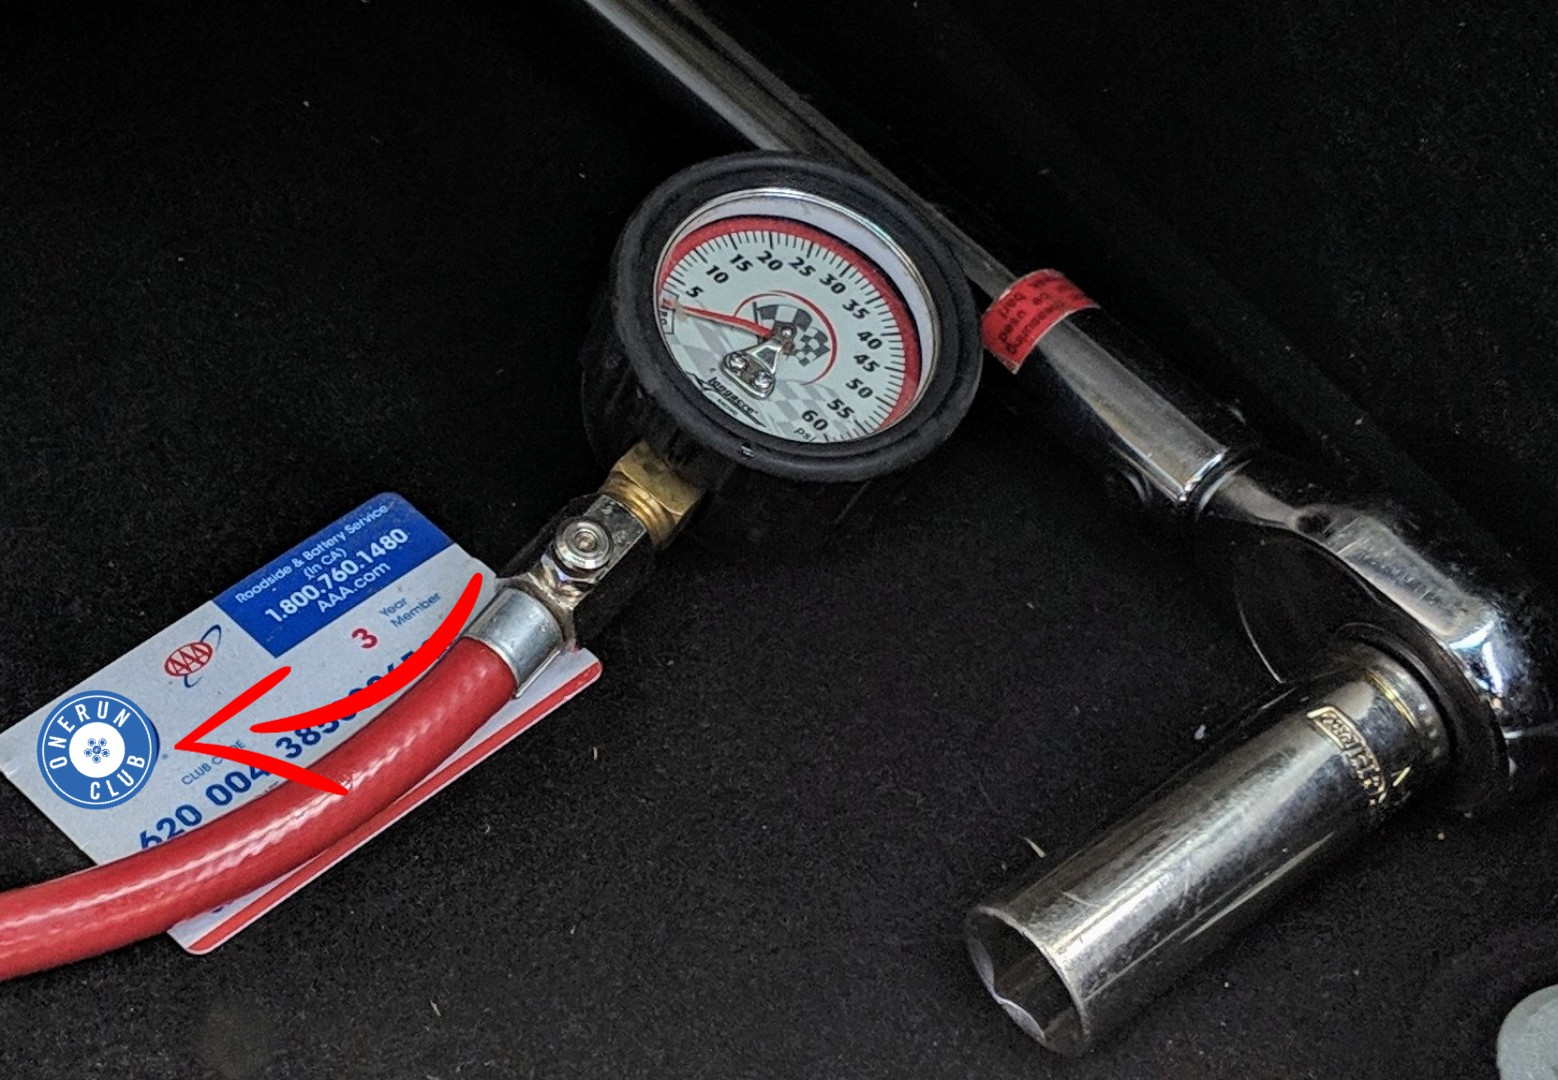 Bare Minimum: Torque Wrench, Tire Pressure Gauge & AAA Card  Level II: Spare fluids, hand tools, chair and sunscreen.